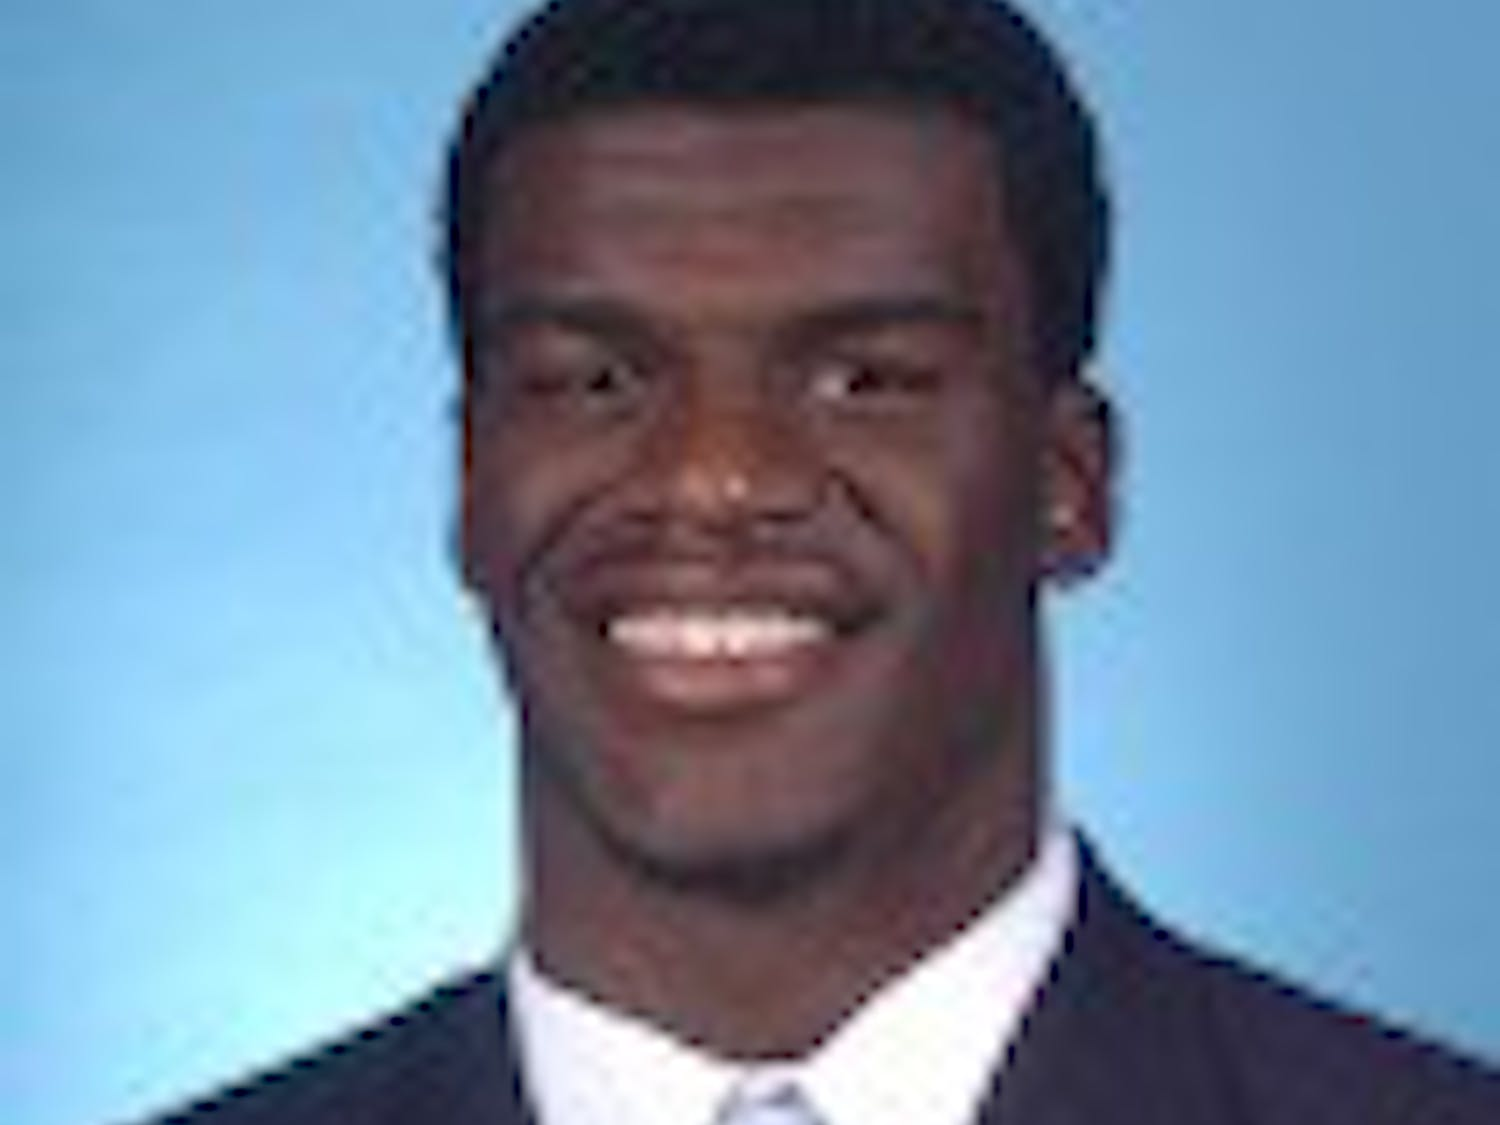 Greg Little  was a receiver for the UNC football team from 2007-2009 before he was deemed ineligible in 2010.